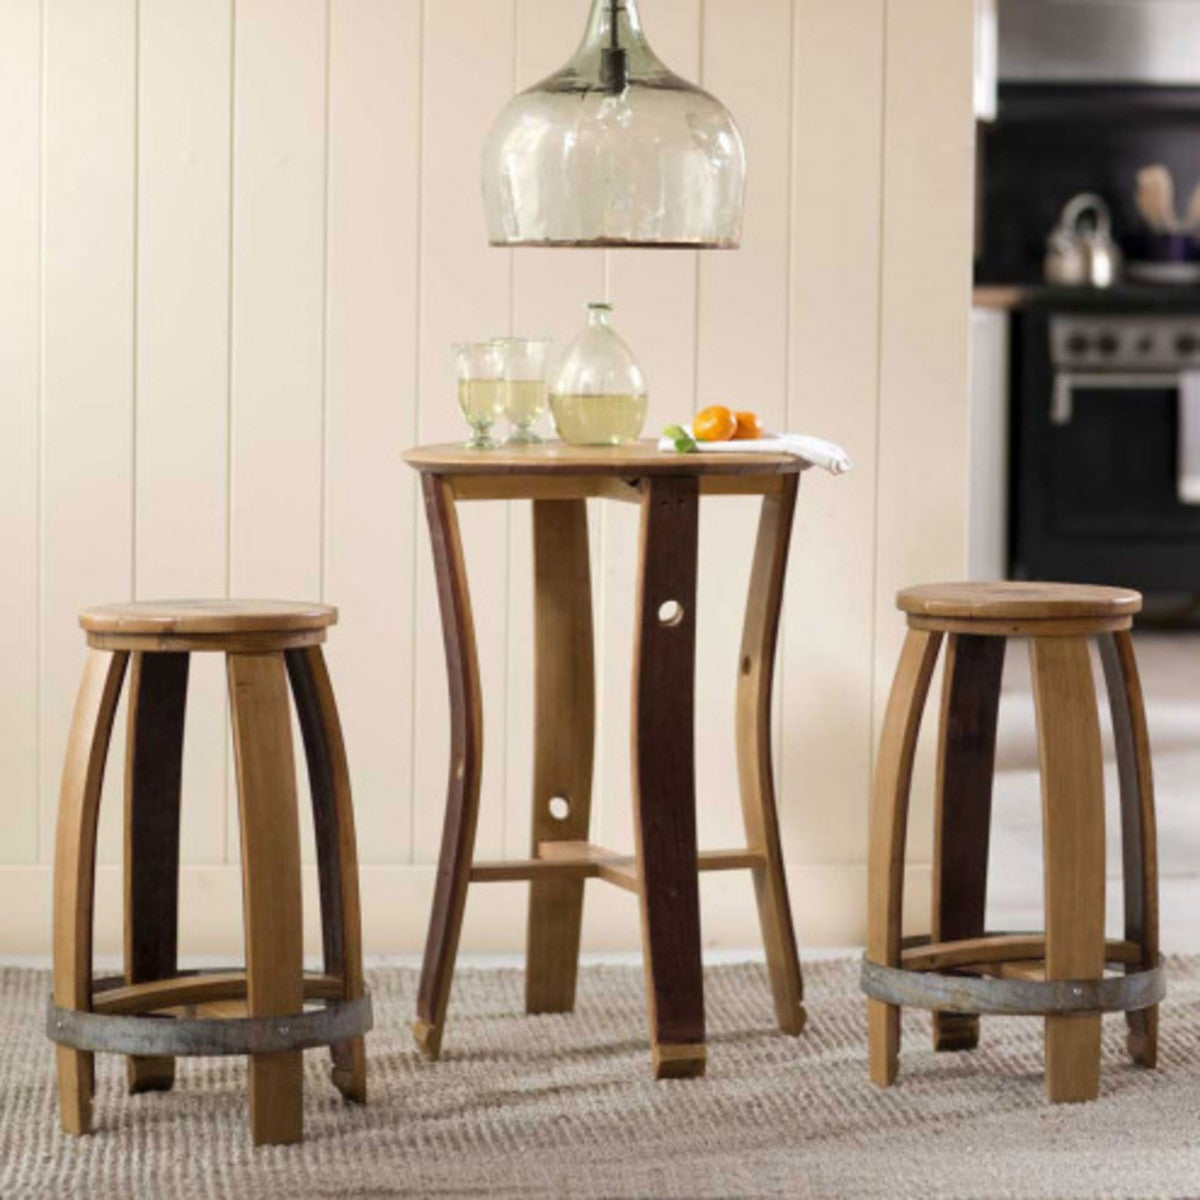 Barrel Stave Set of Table and 2 Stools